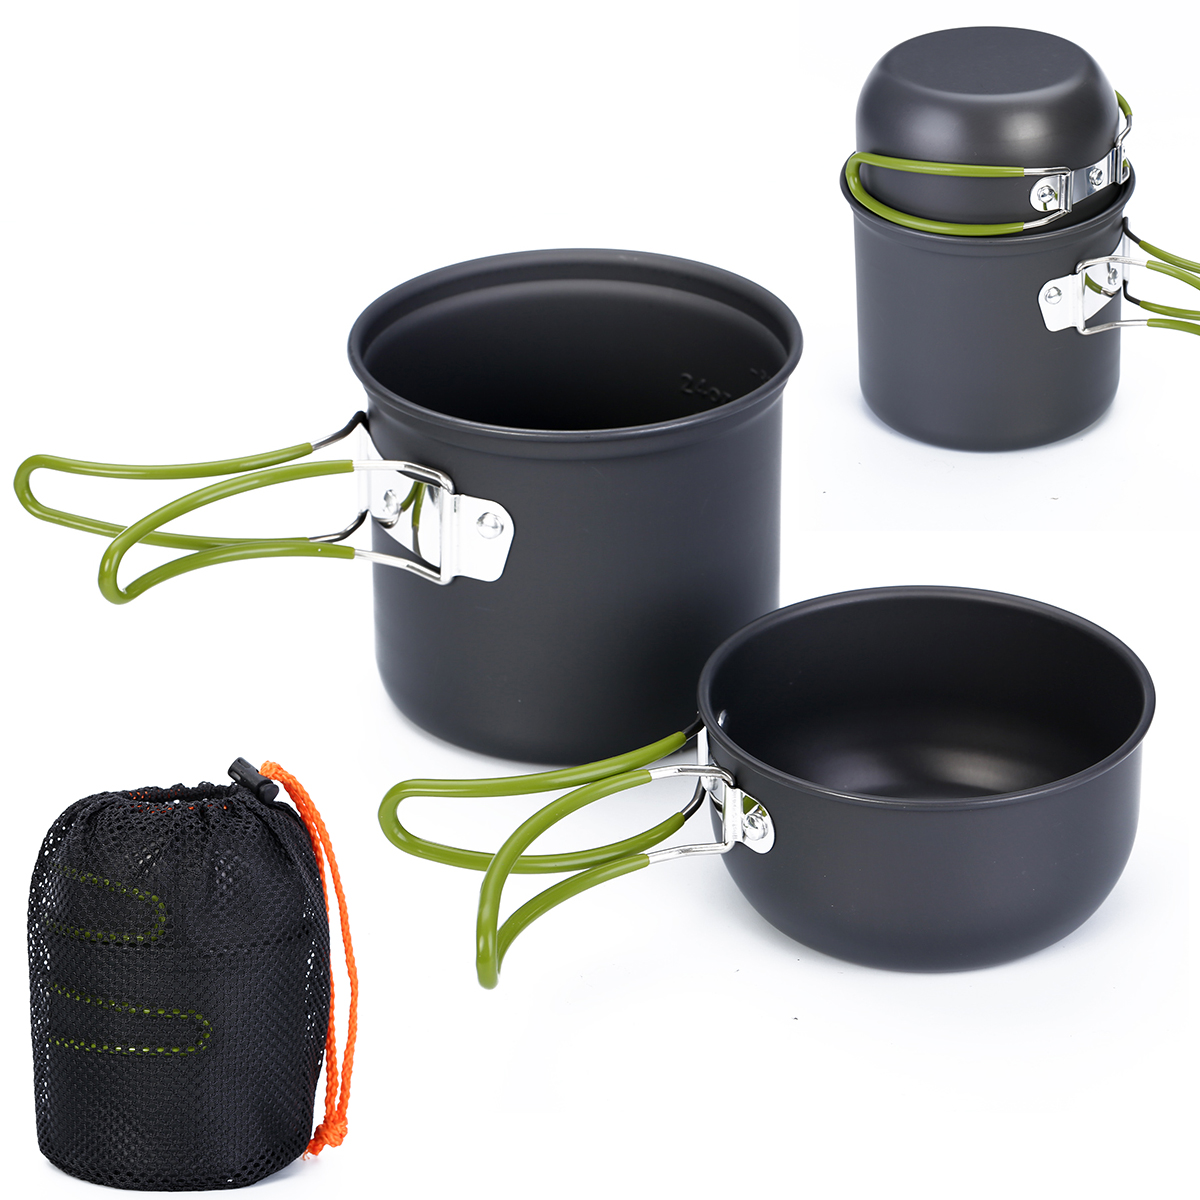 New Non-Stick Aluminum Camping Cookware Hiking Outdoor Camping Backpacking Cooking Picnic Portable Cookware Set Bowl Pot